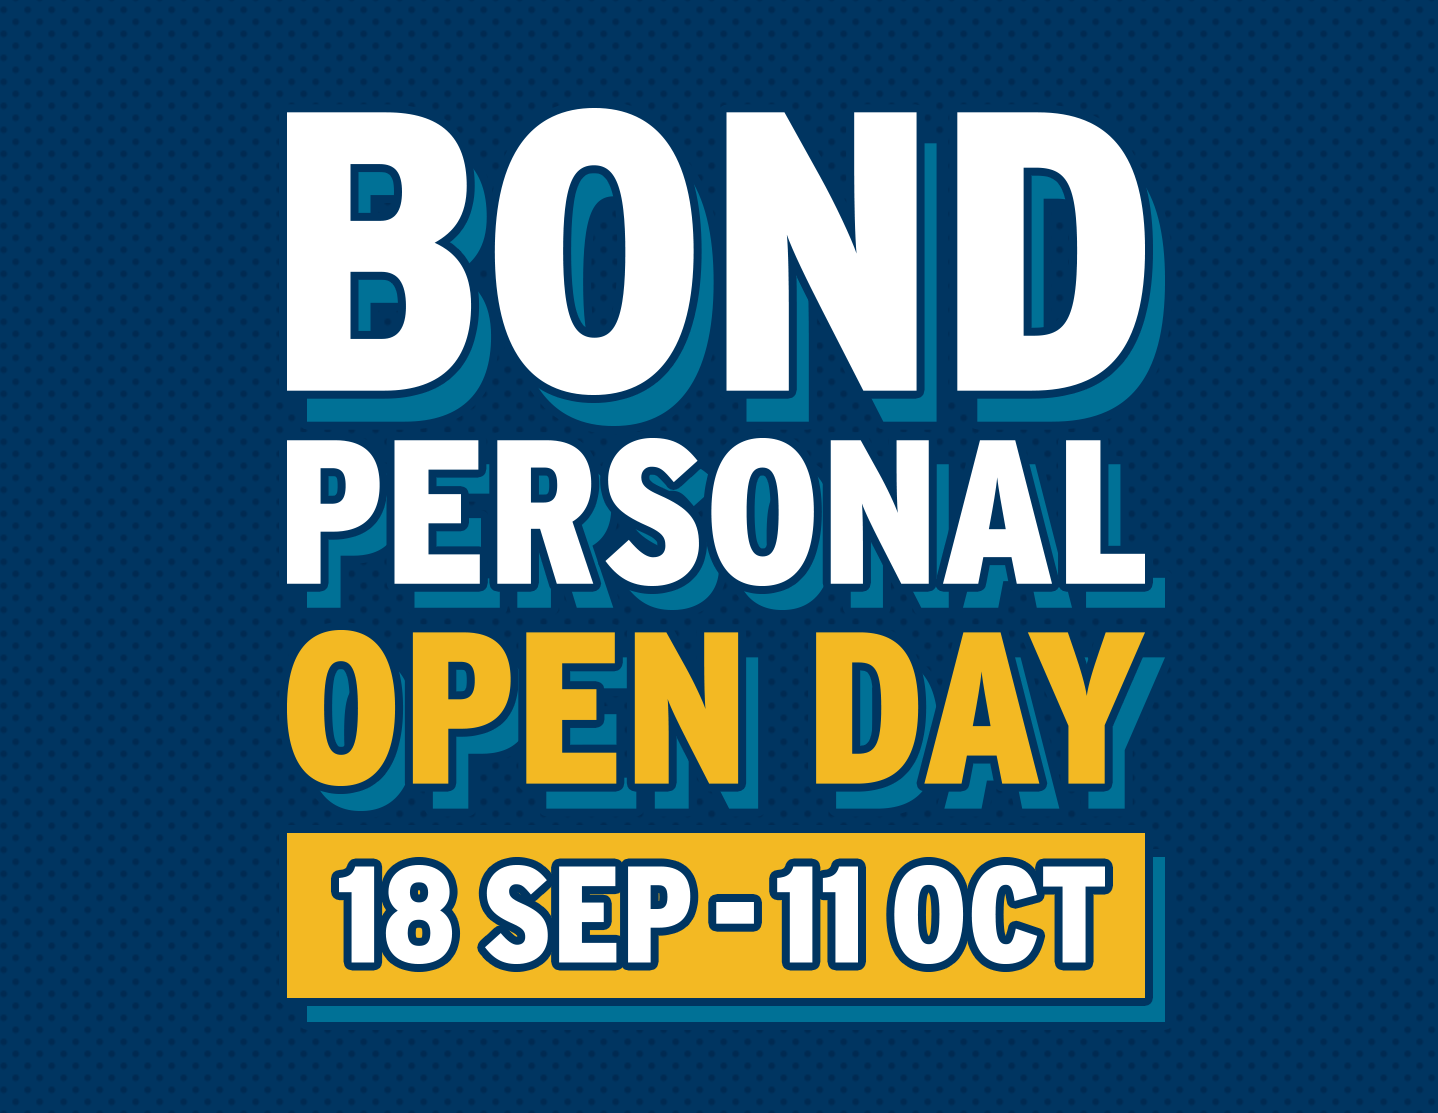 Bond Personal Open Day_840x650.png